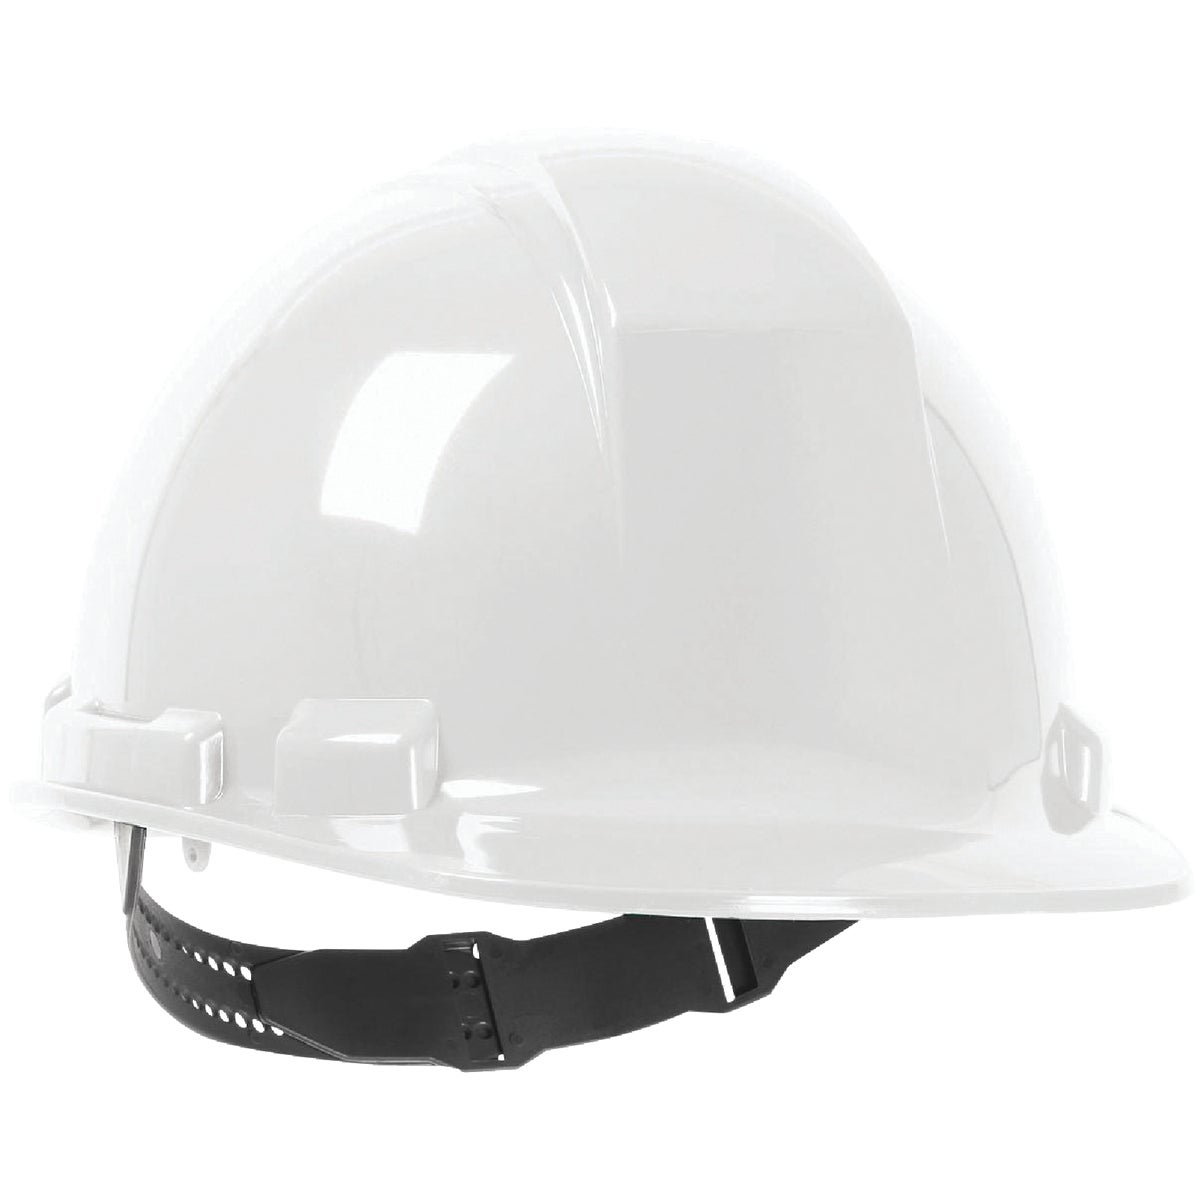 WHITE HARD HAT - 818066 by Msa Safety